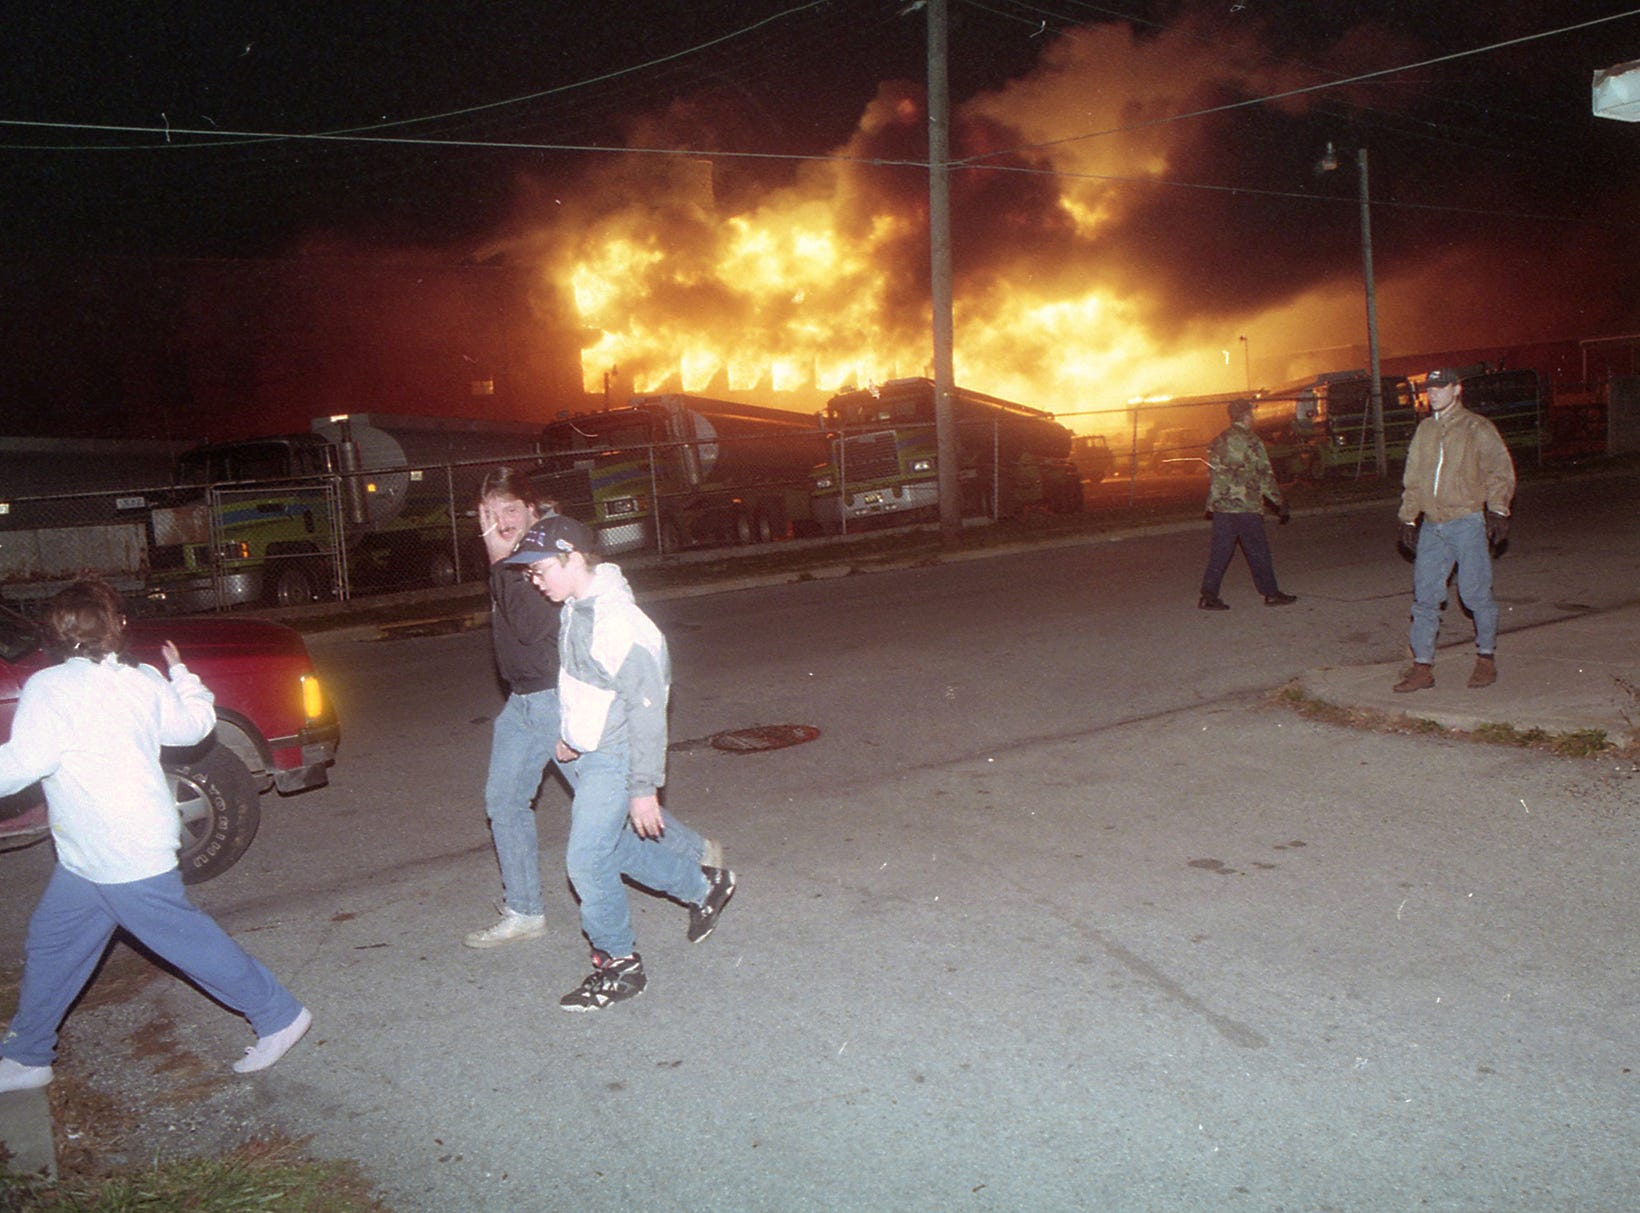 People walk past the Shipley tankers in the early stages of the fire. A fire began at the former Thonet Furniture plant at 491 East Princess Street on December 11, 1993. Eventually, the four alarm fire spread through the complex of buildings and several other properties.